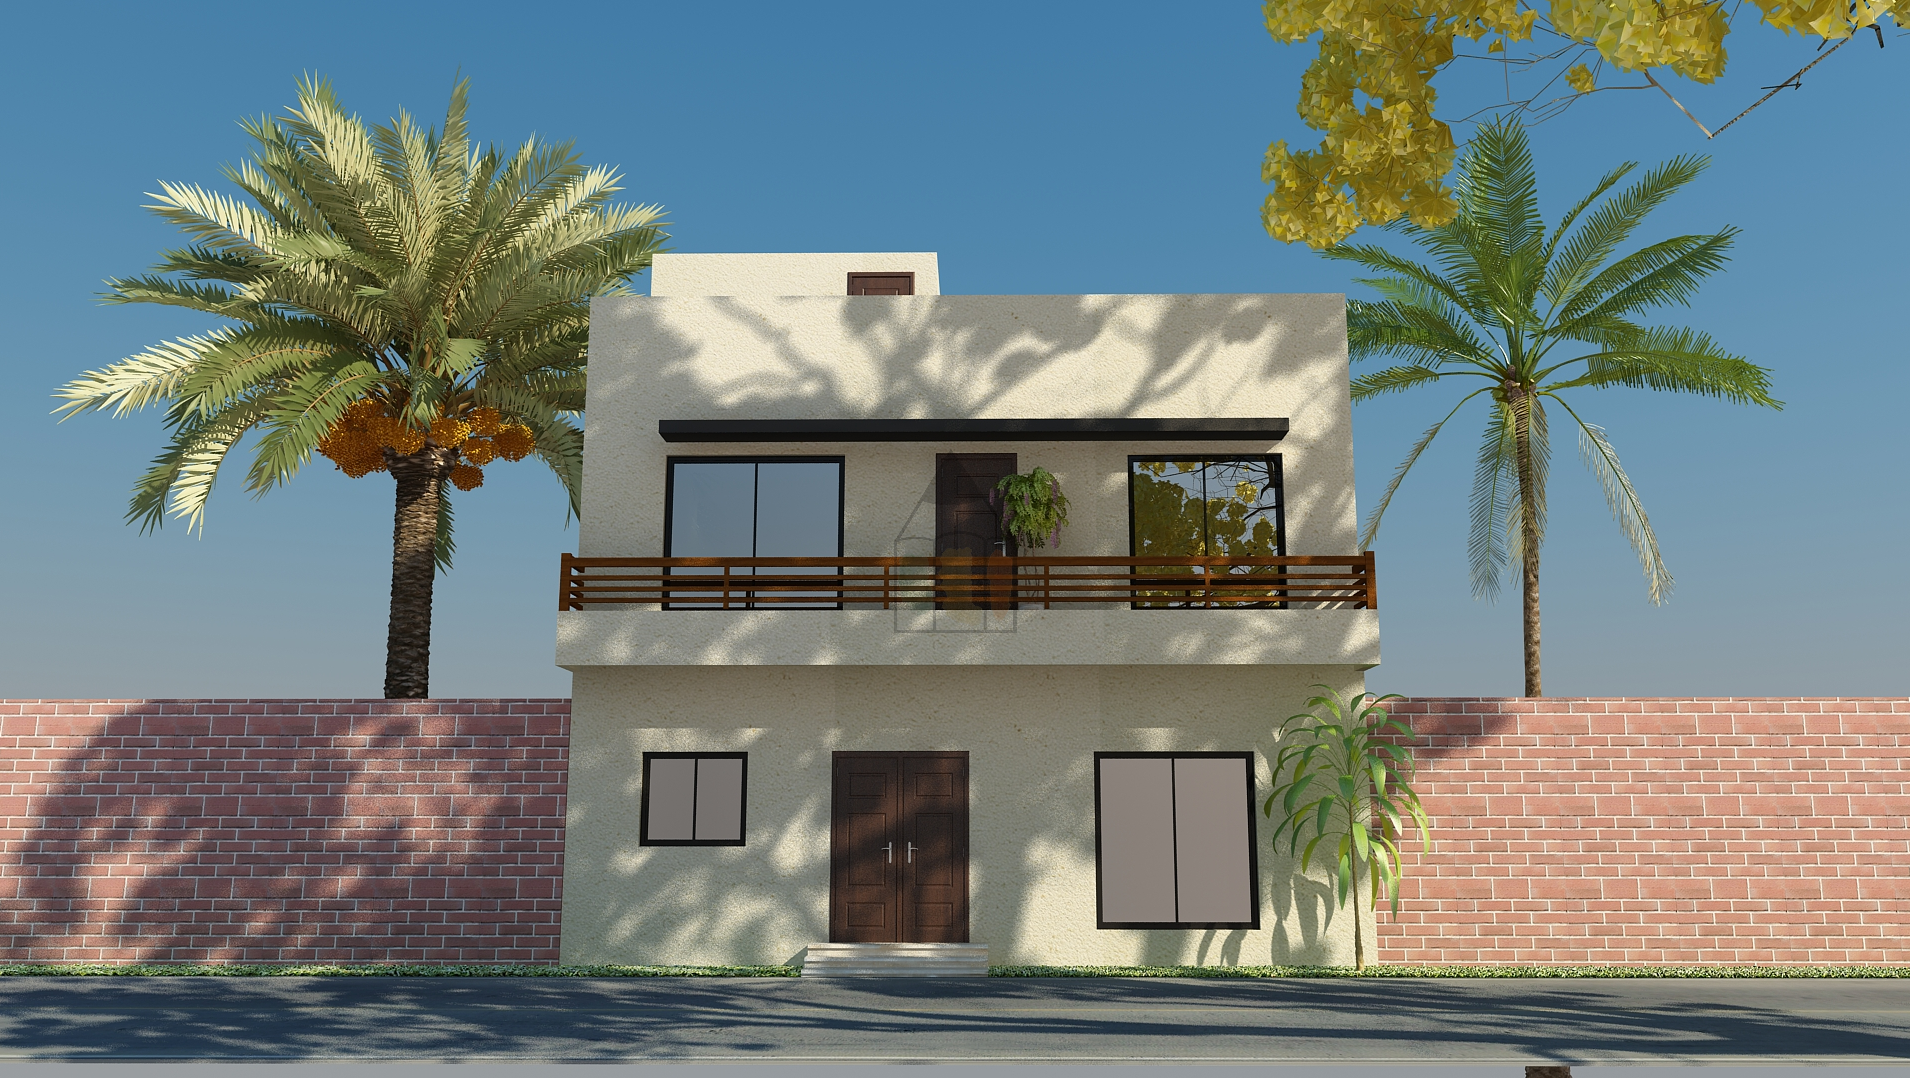 4 marla house map | Front Elevation | Pinterest | House, Maps and 4).